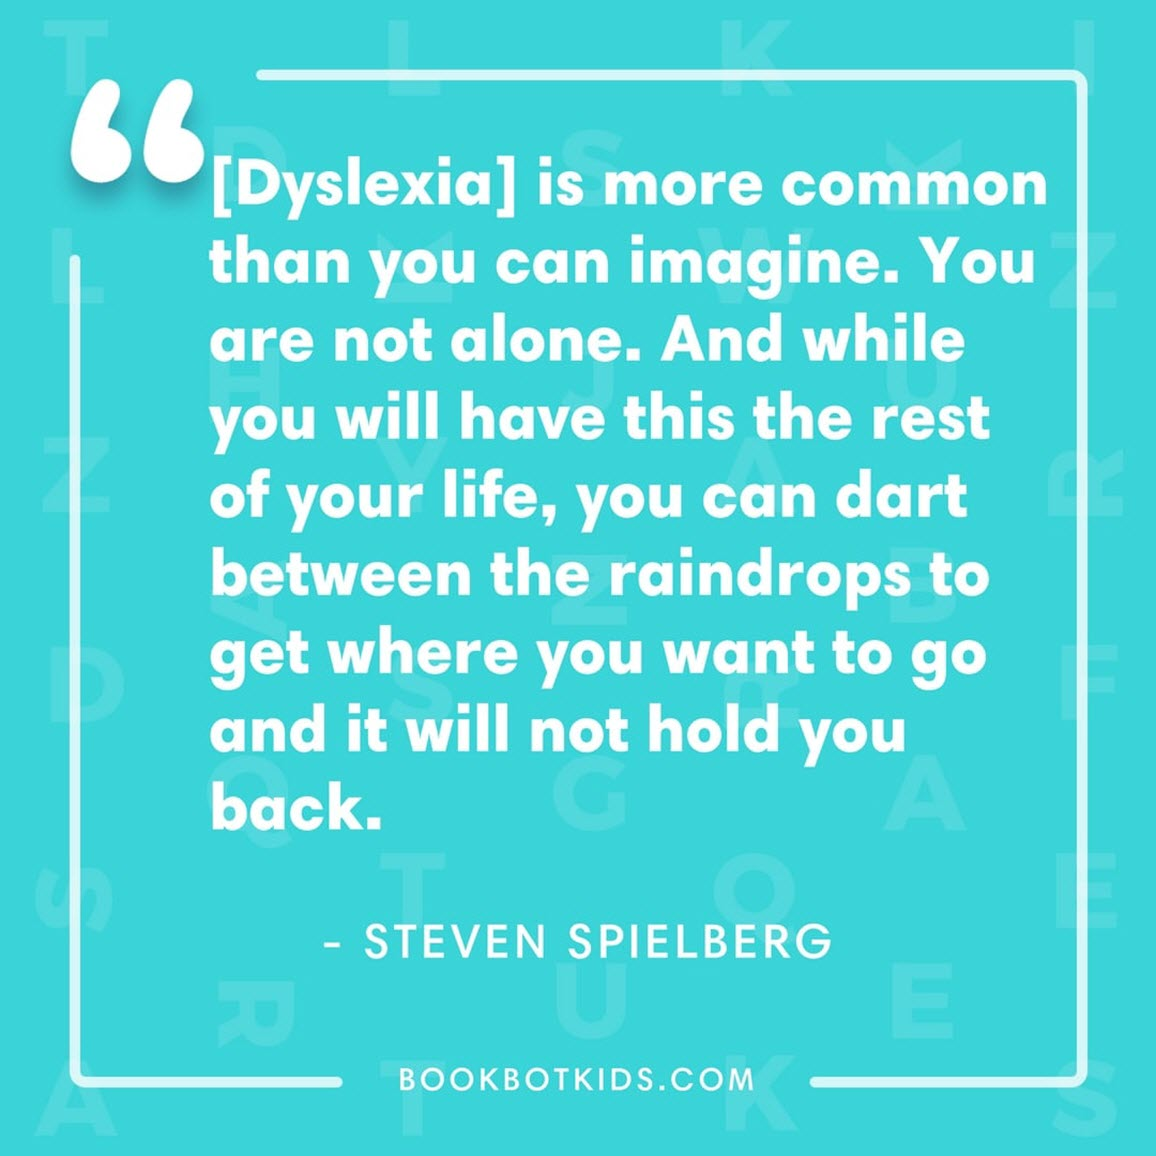 [Dyslexia] is more common than you can imagine. You are not alone. And while you will have this the rest of your life, you can dart between the raindrops to get where you want to go and it will not hold you back. – Steven Spielberg